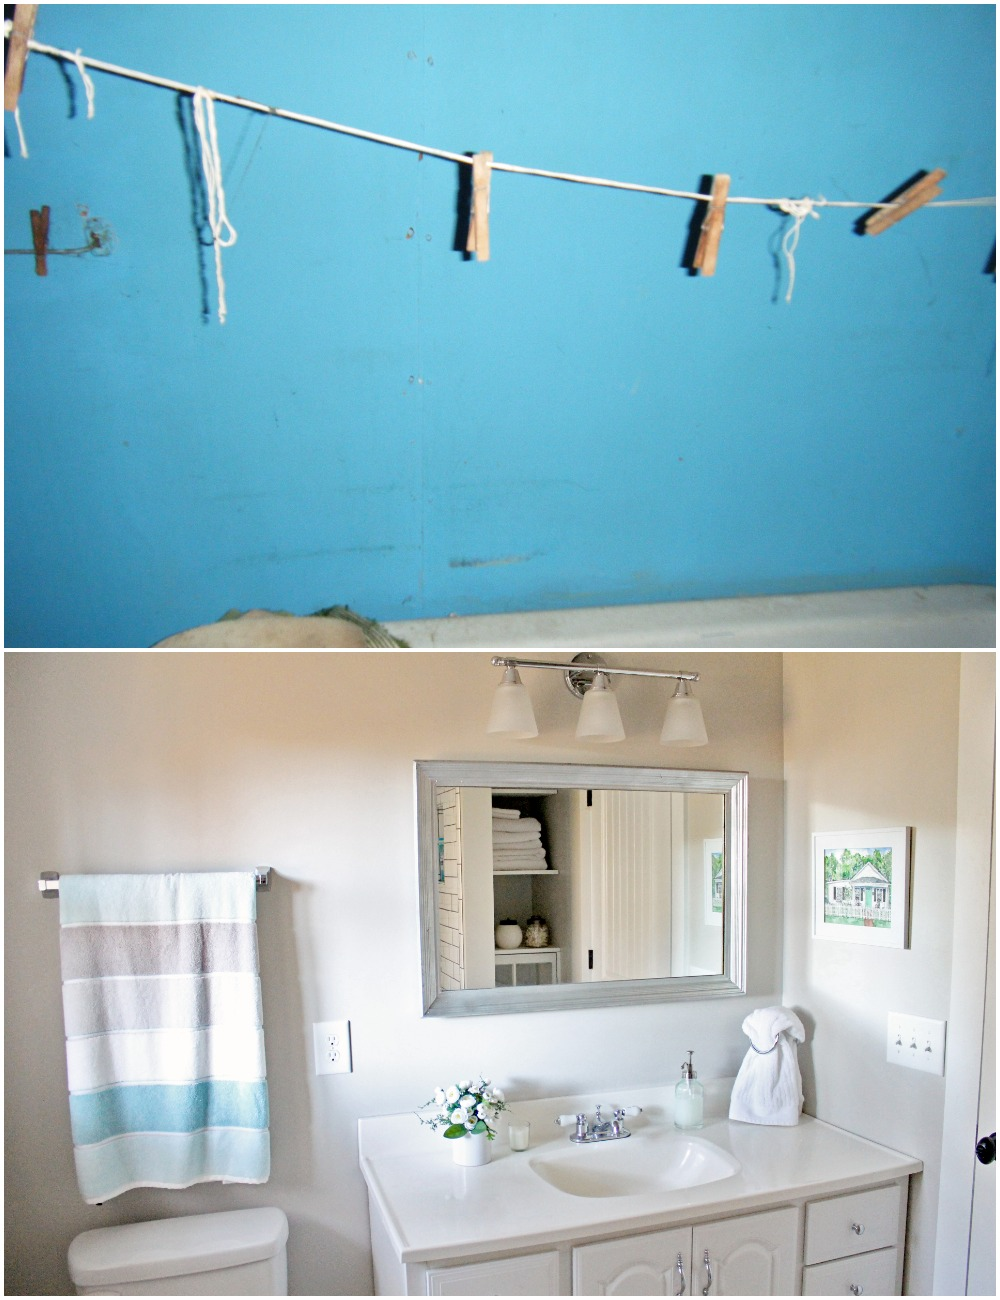 Elizabeth Burns Design  Budget-Friendly Fixer Upper Farmhouse Before and After House Flip - DIY Small Bathroom with Storage and Subway Tile - Sherwin Williams Agreeable Gray (2).jpg